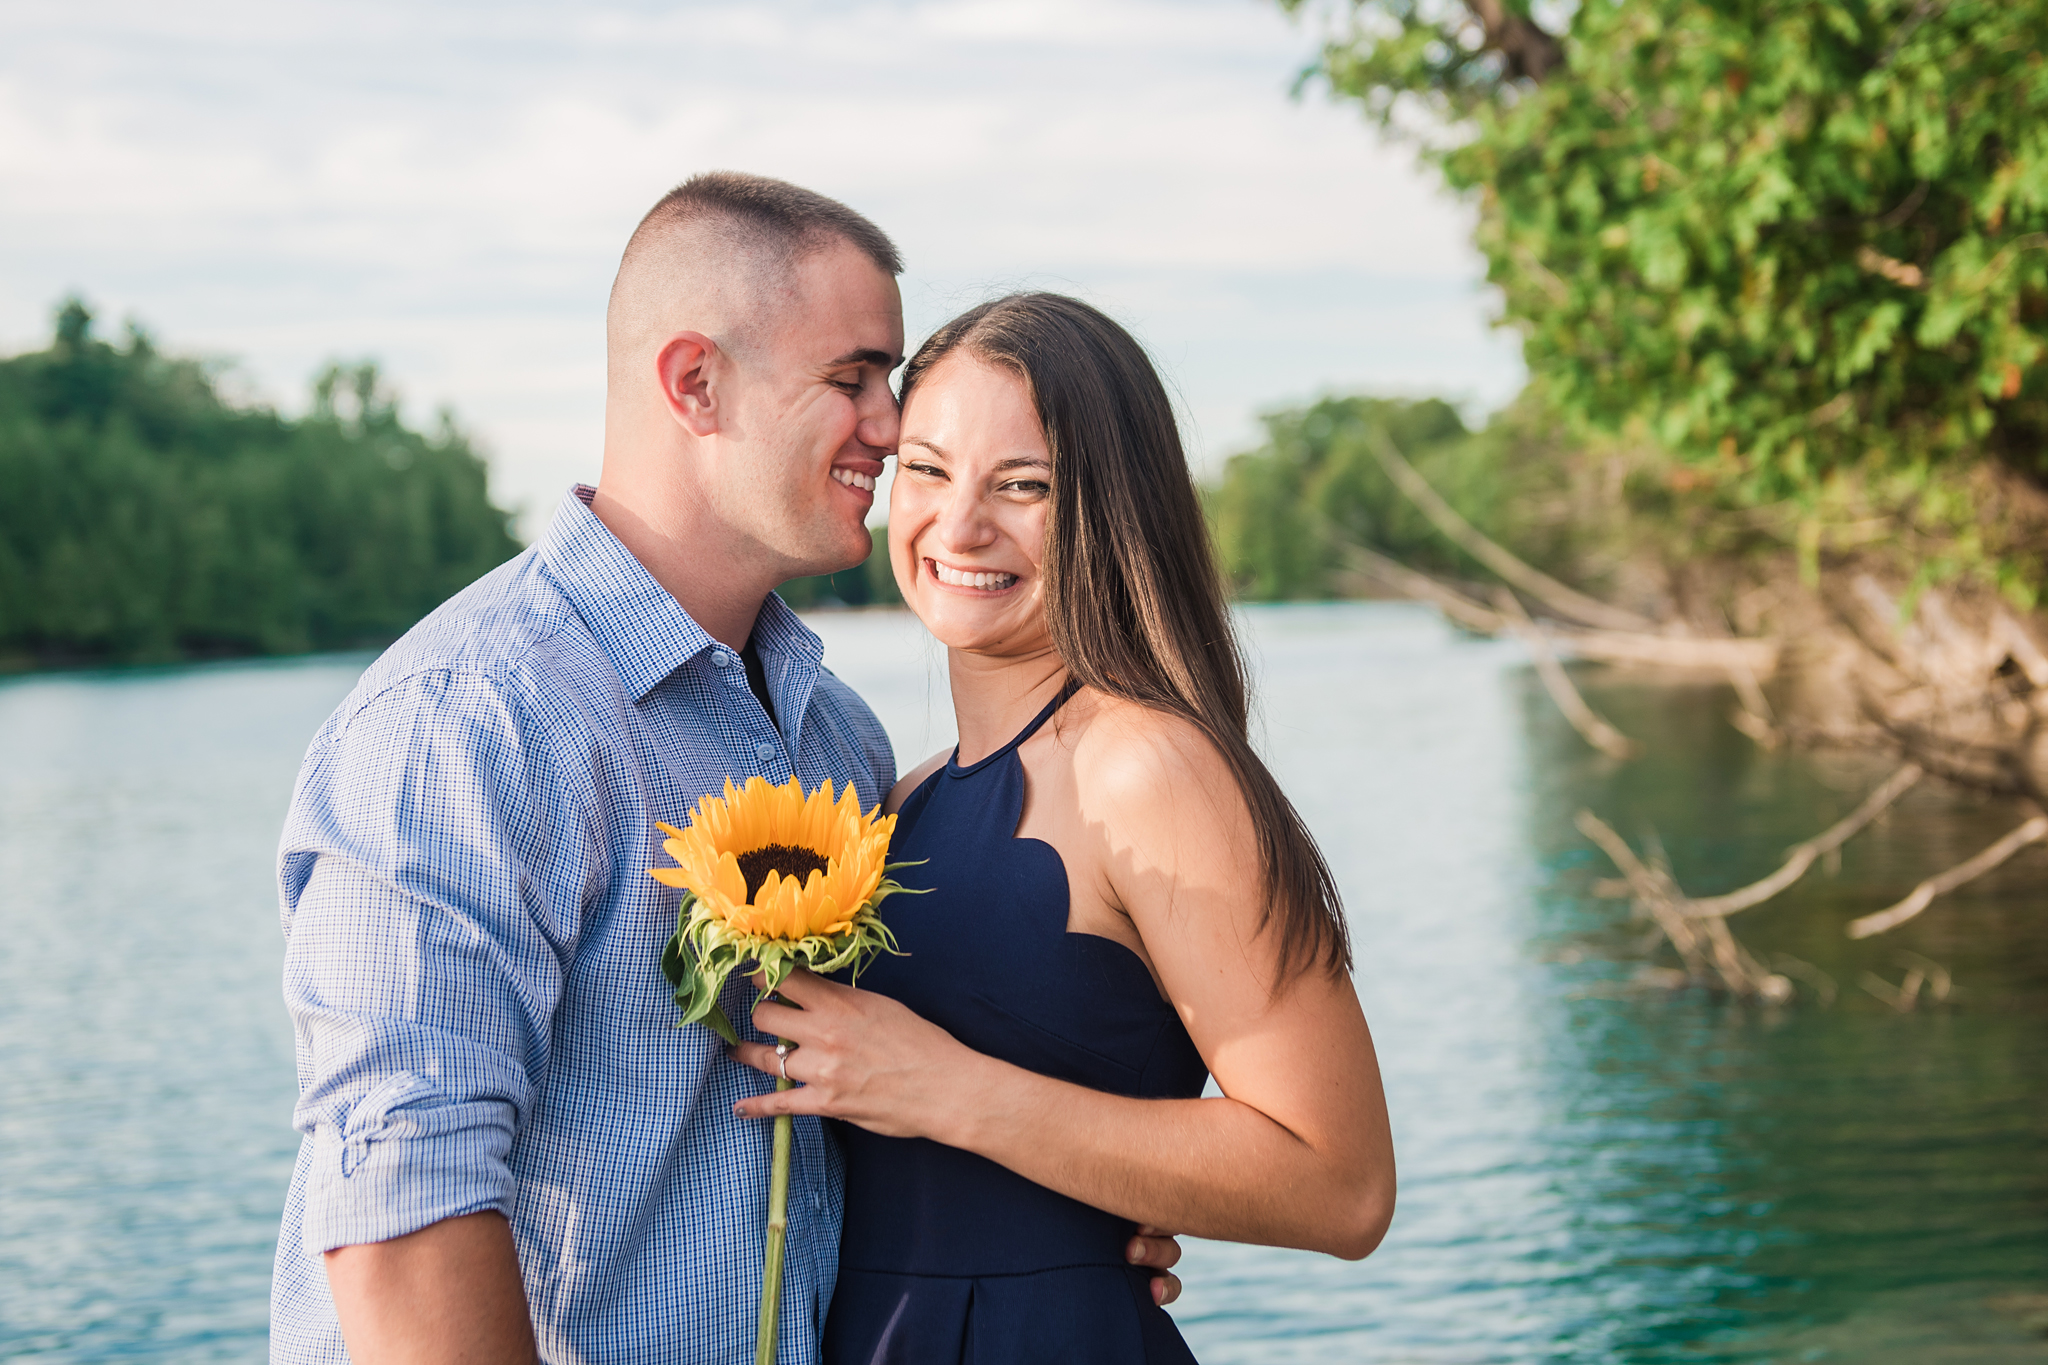 Green_Lakes_State_Park_Syracuse_Engagement_Session_JILL_STUDIO_Rochester_NY_Photographer_DSC_1066.jpg